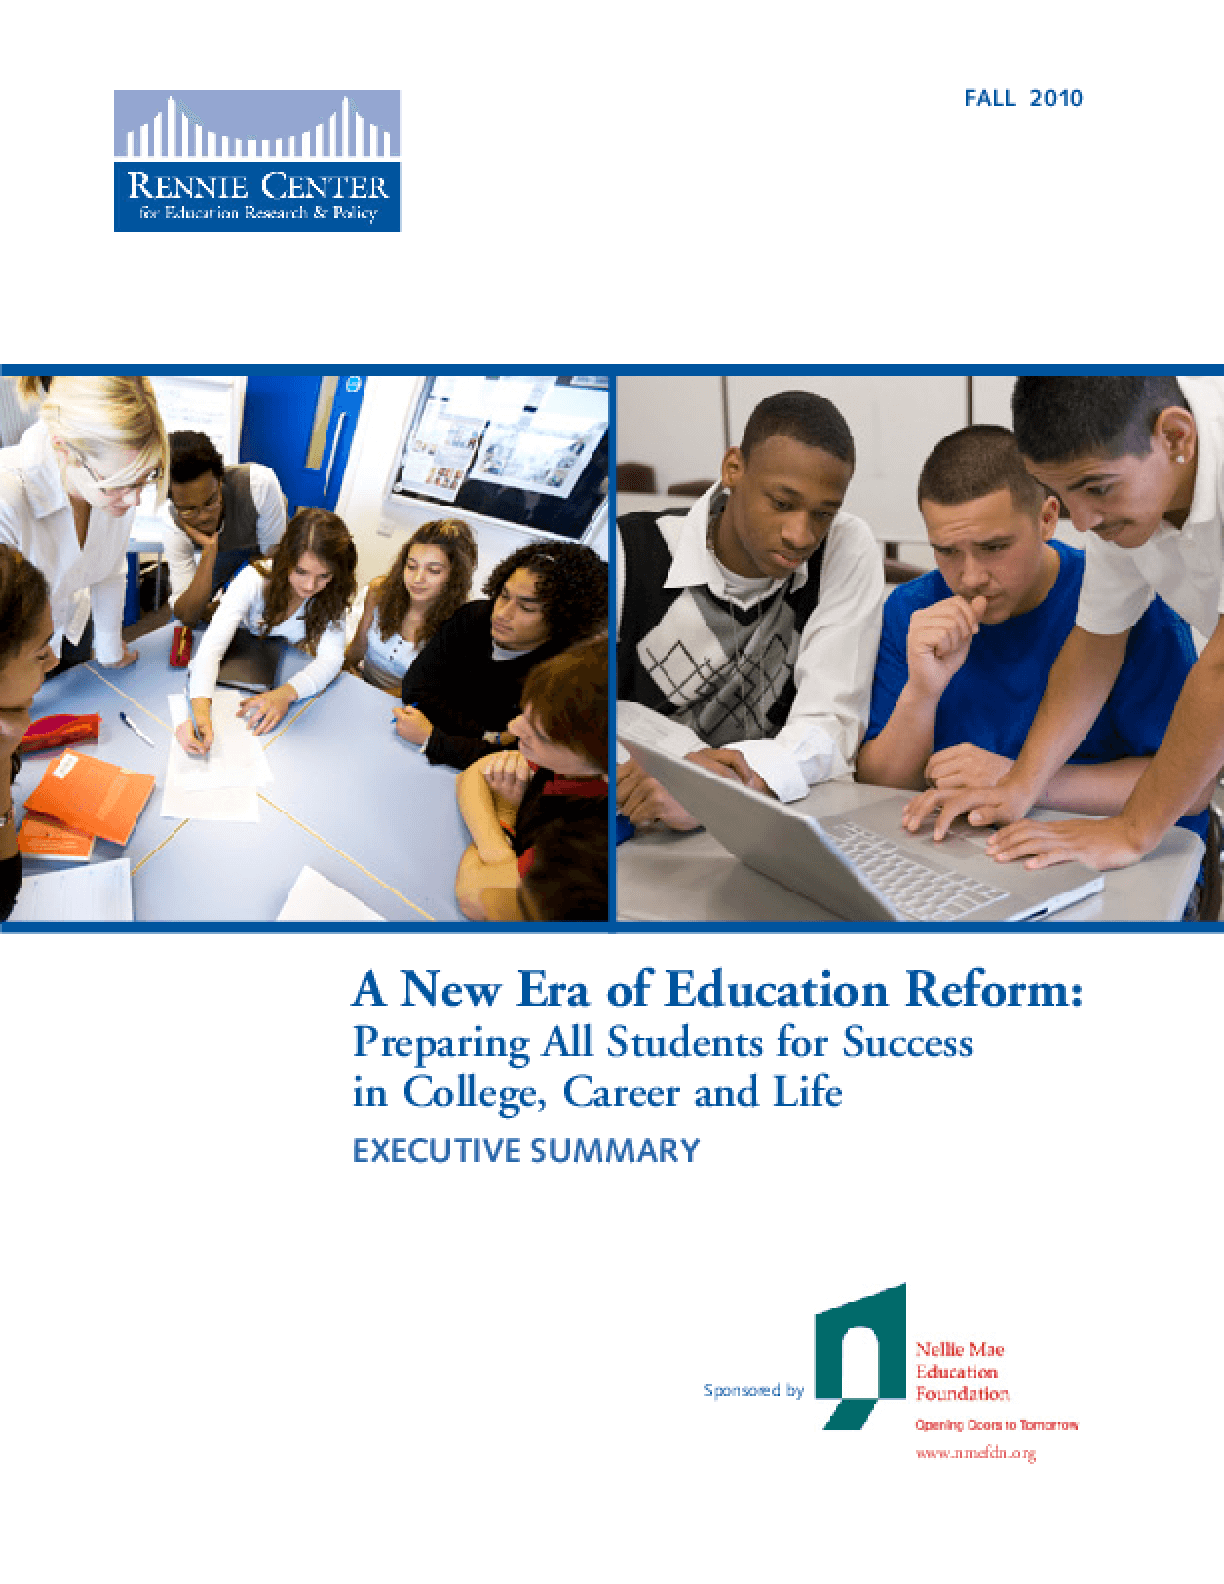 Executive Summary: A New Era in Education Reform: Preparing All Students for Success in College, Career and Life